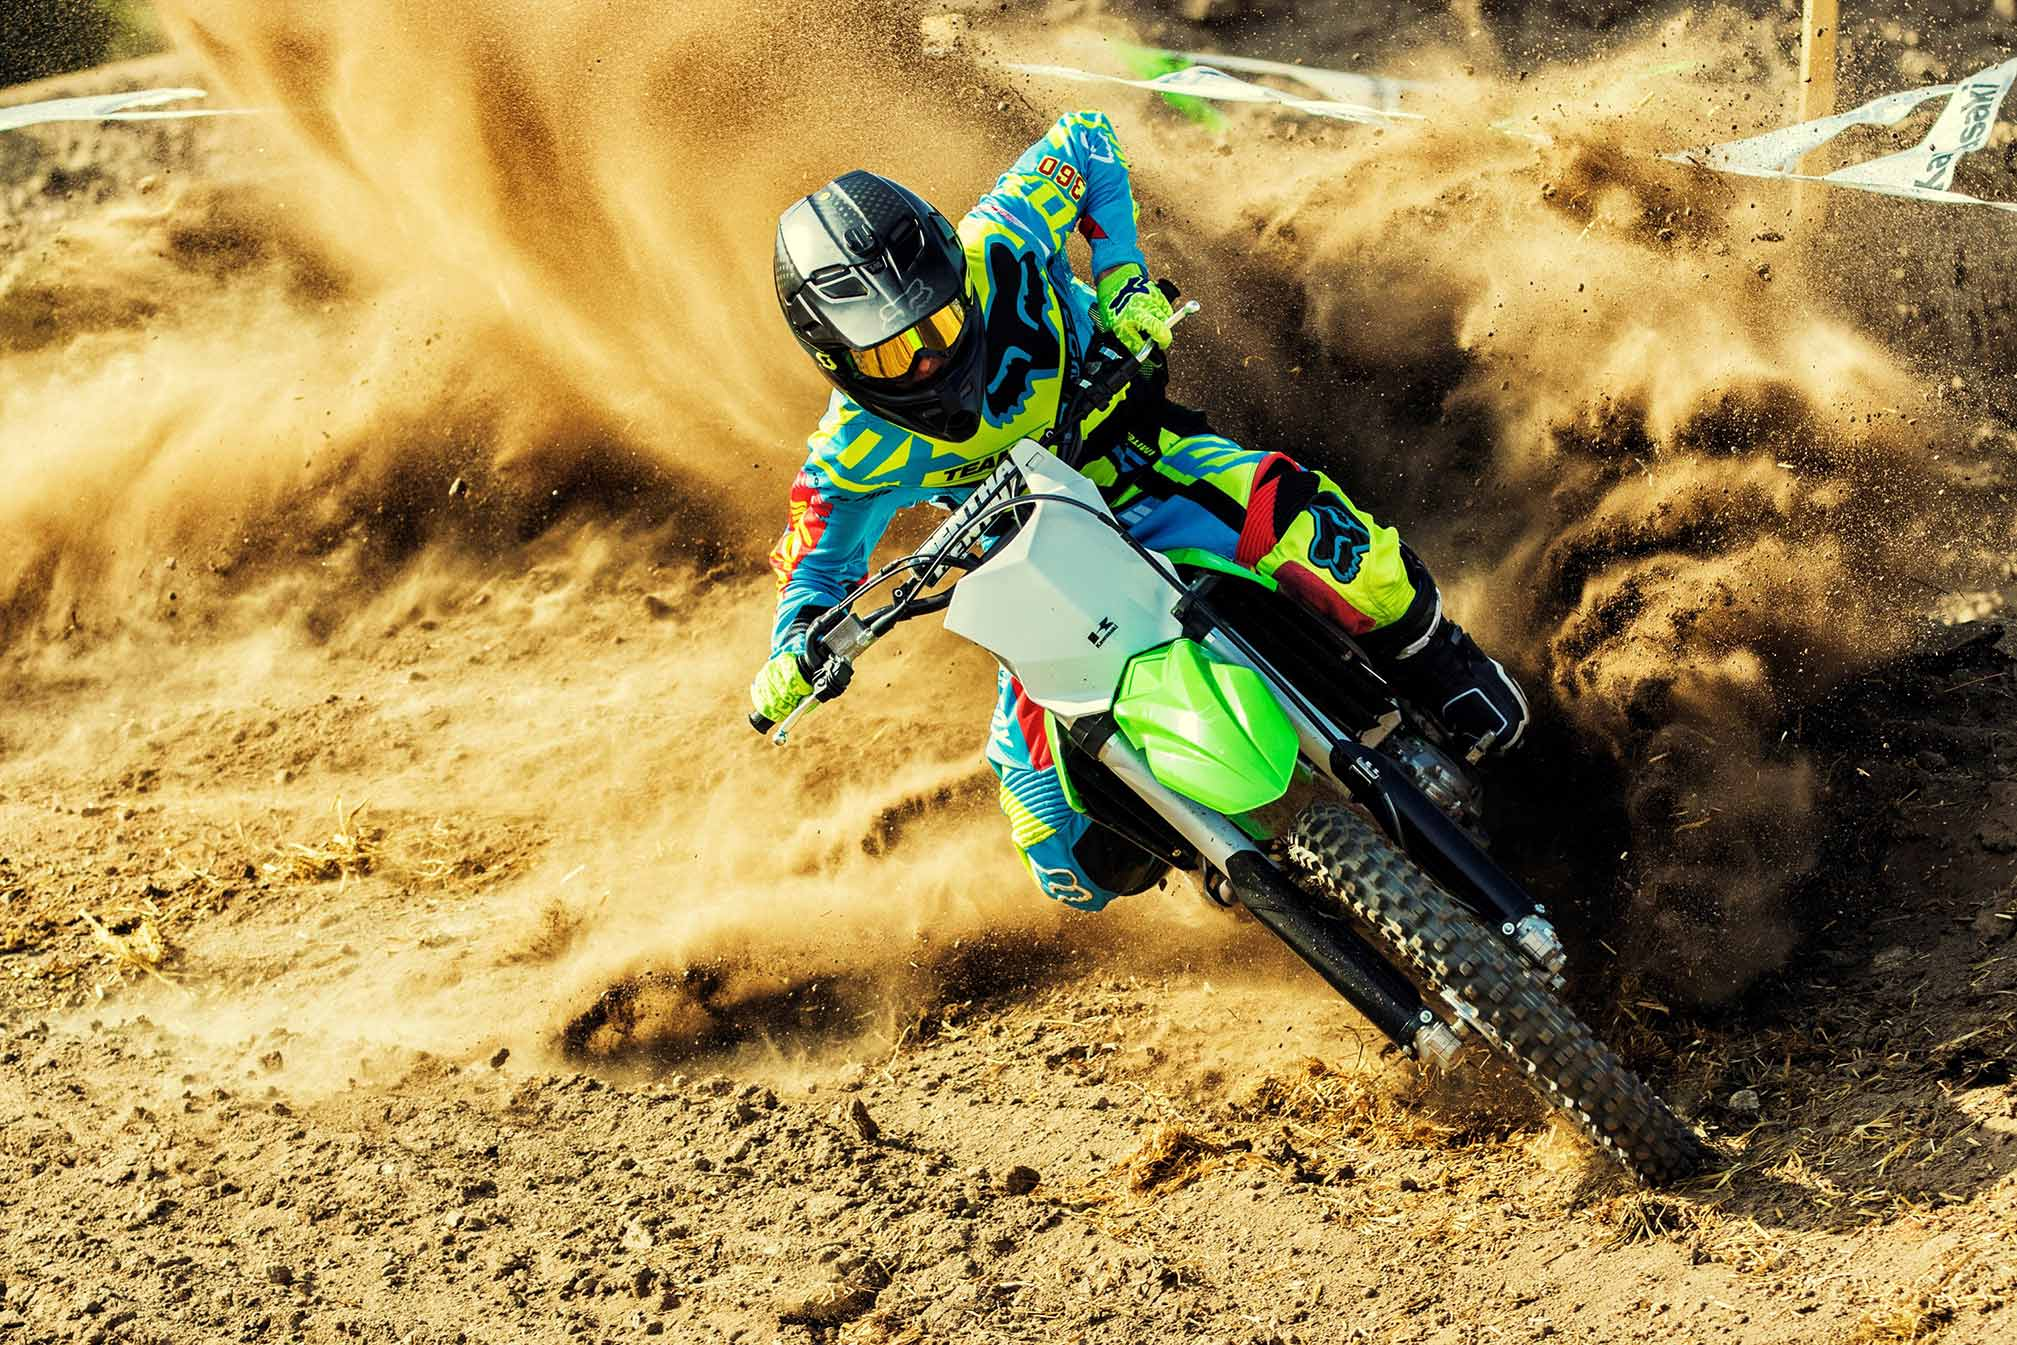 2017 Kawasaki Kx450f Hd Wallpaper Background Image 2017x1345